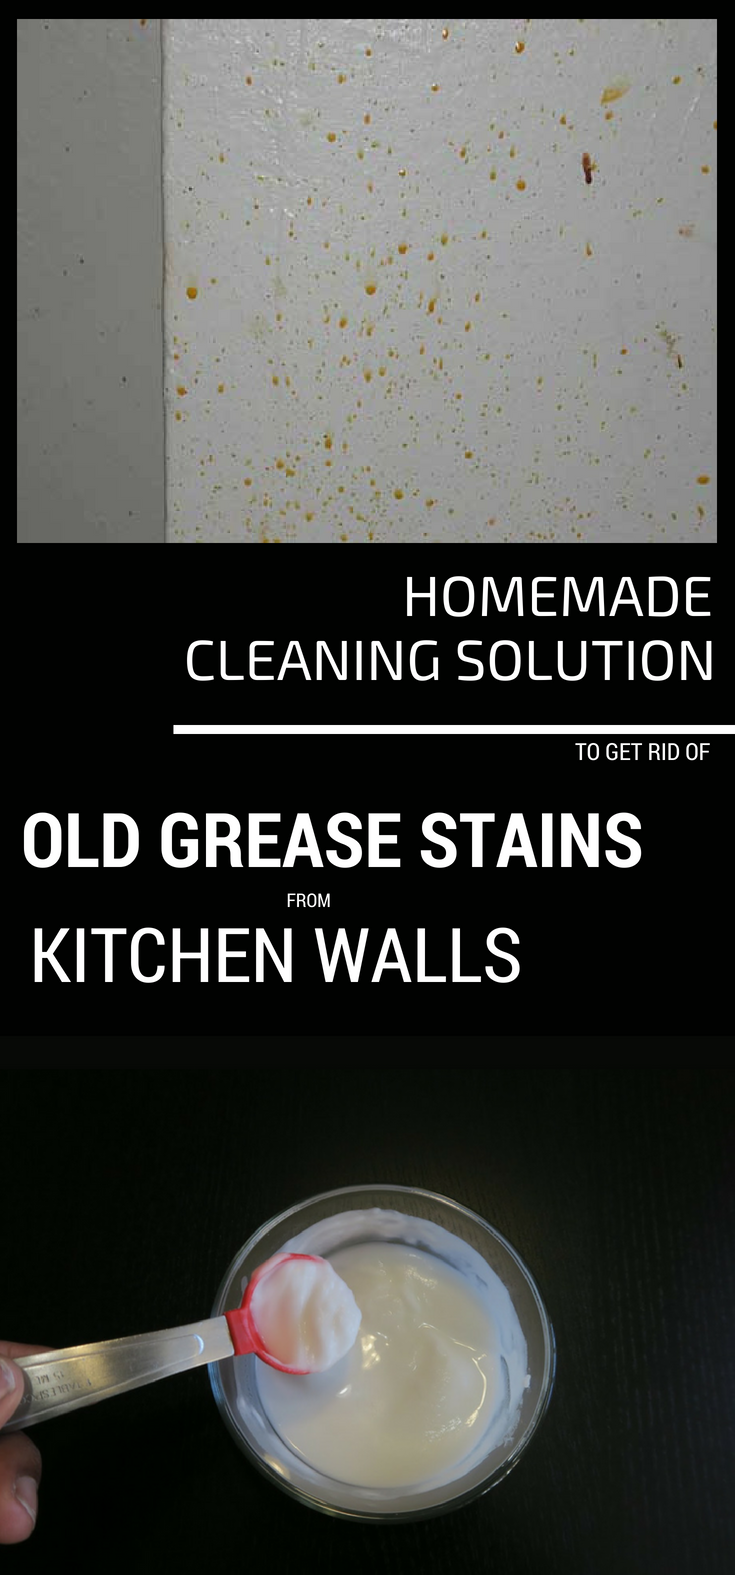 Homemade Cleaning Solution To Get Rid Of Old Grease Stains